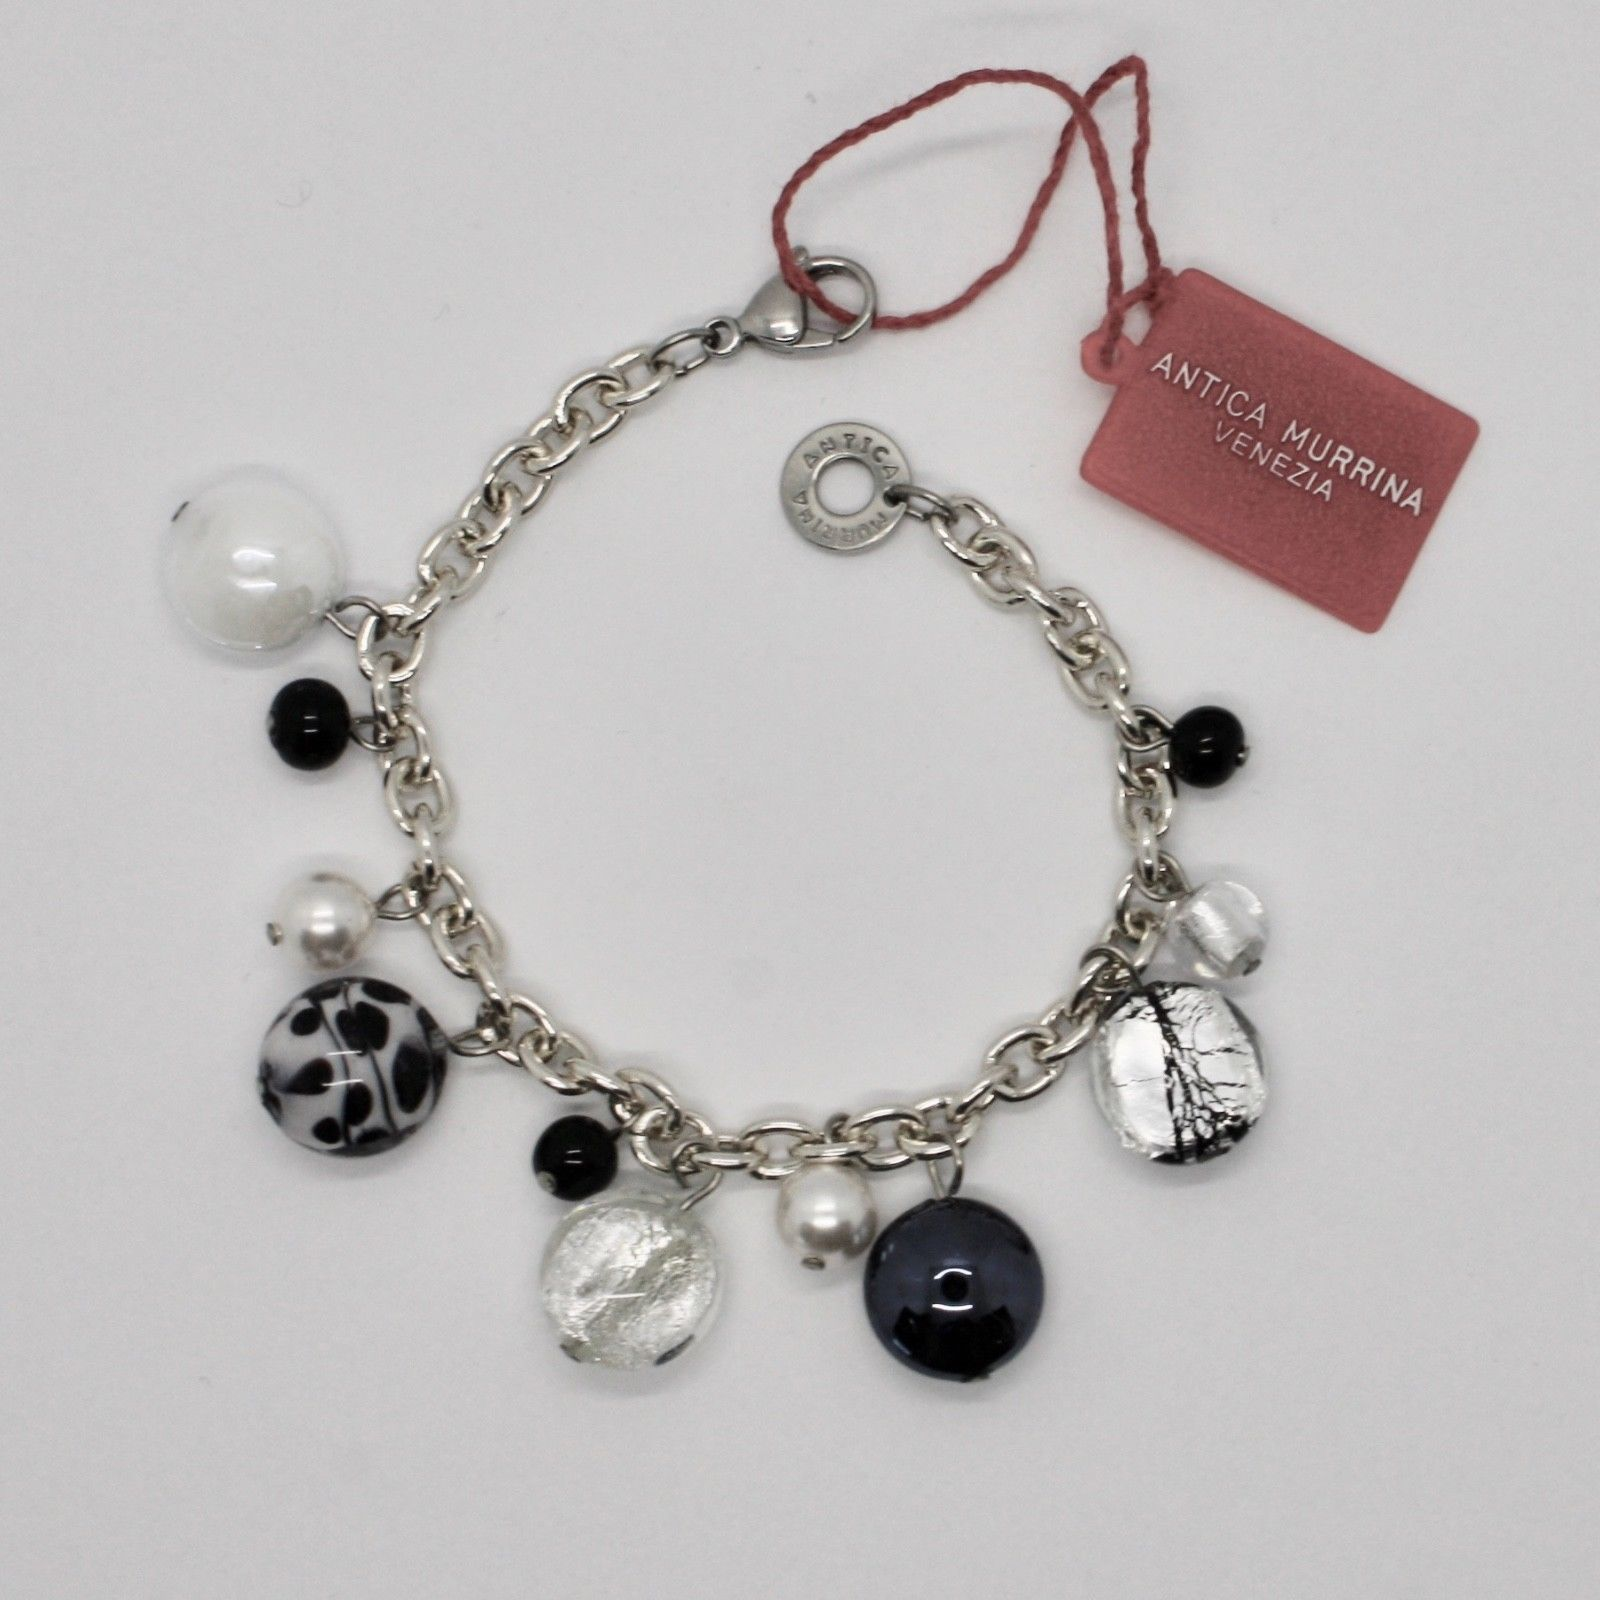 ANTICA MURRINA VENEZIA BRACELET WITH MURANO GLASS BLACK AND WHITE BR617A15